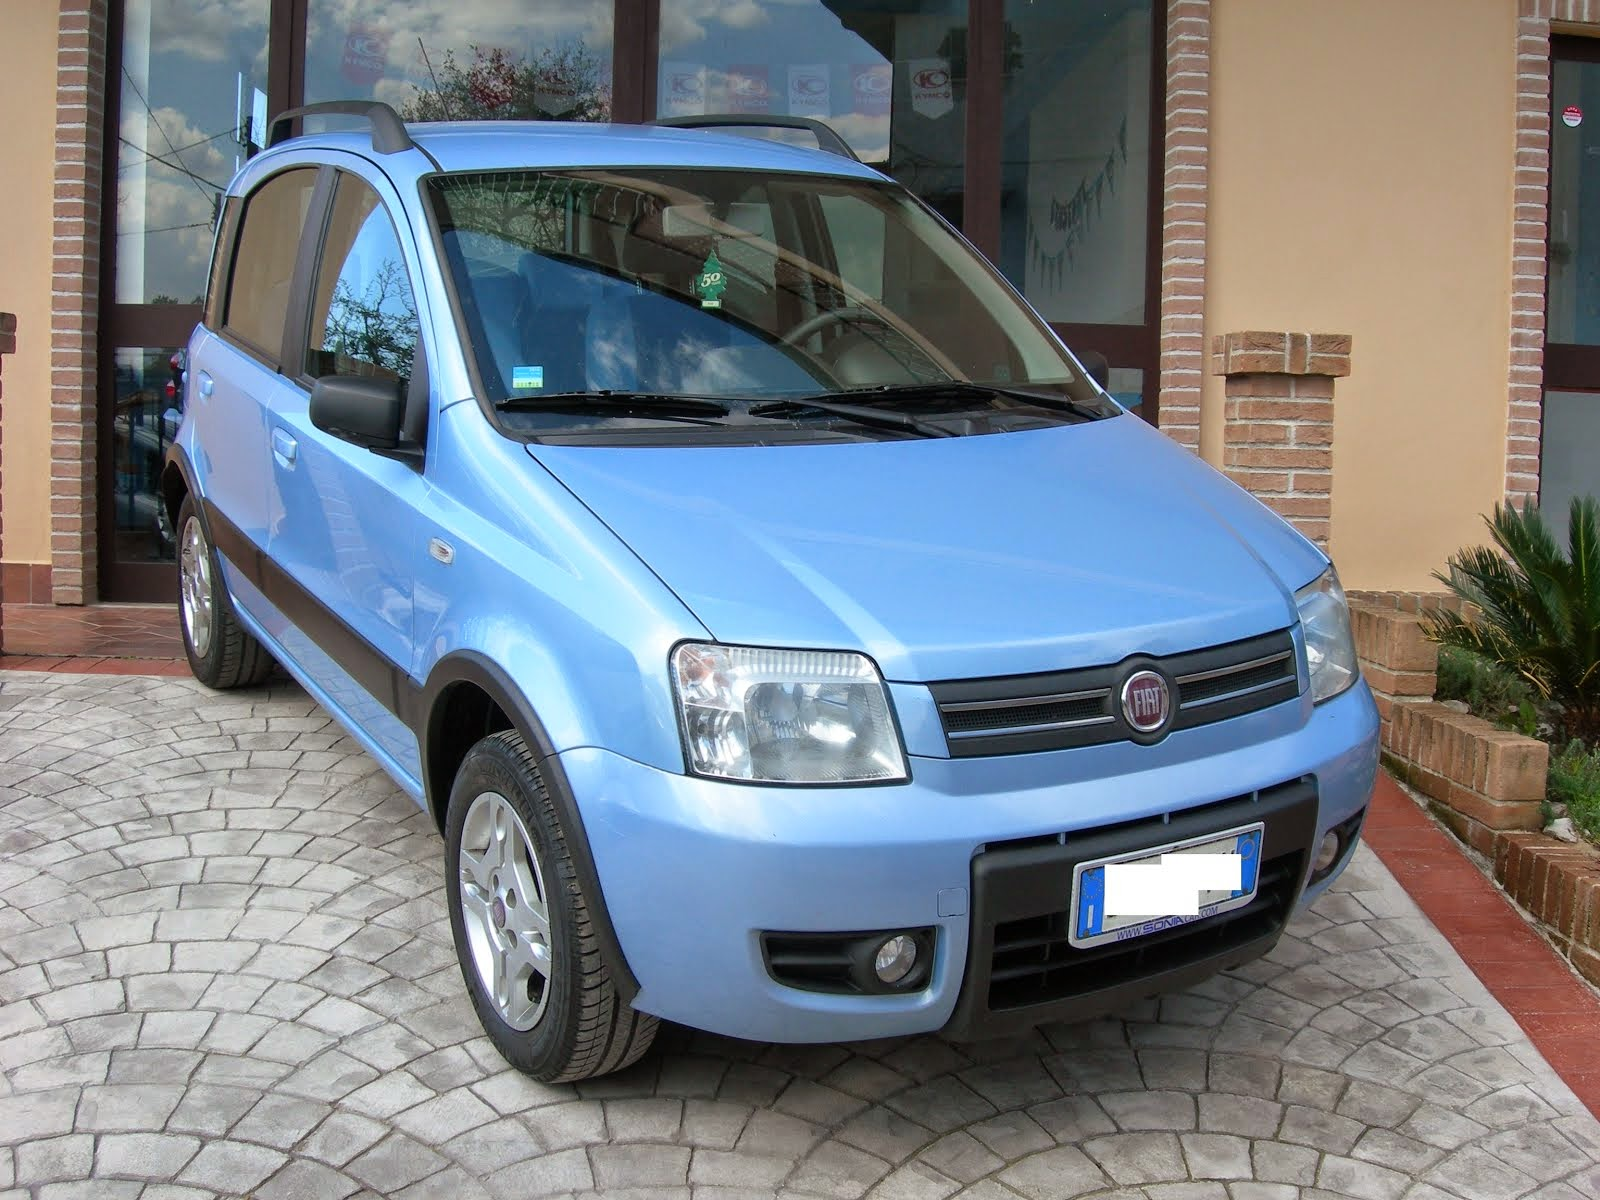 Fiat Panda 1.2 Natural Power Metano Climbing Anno 2008 Acc.Full optional con 90.000 km